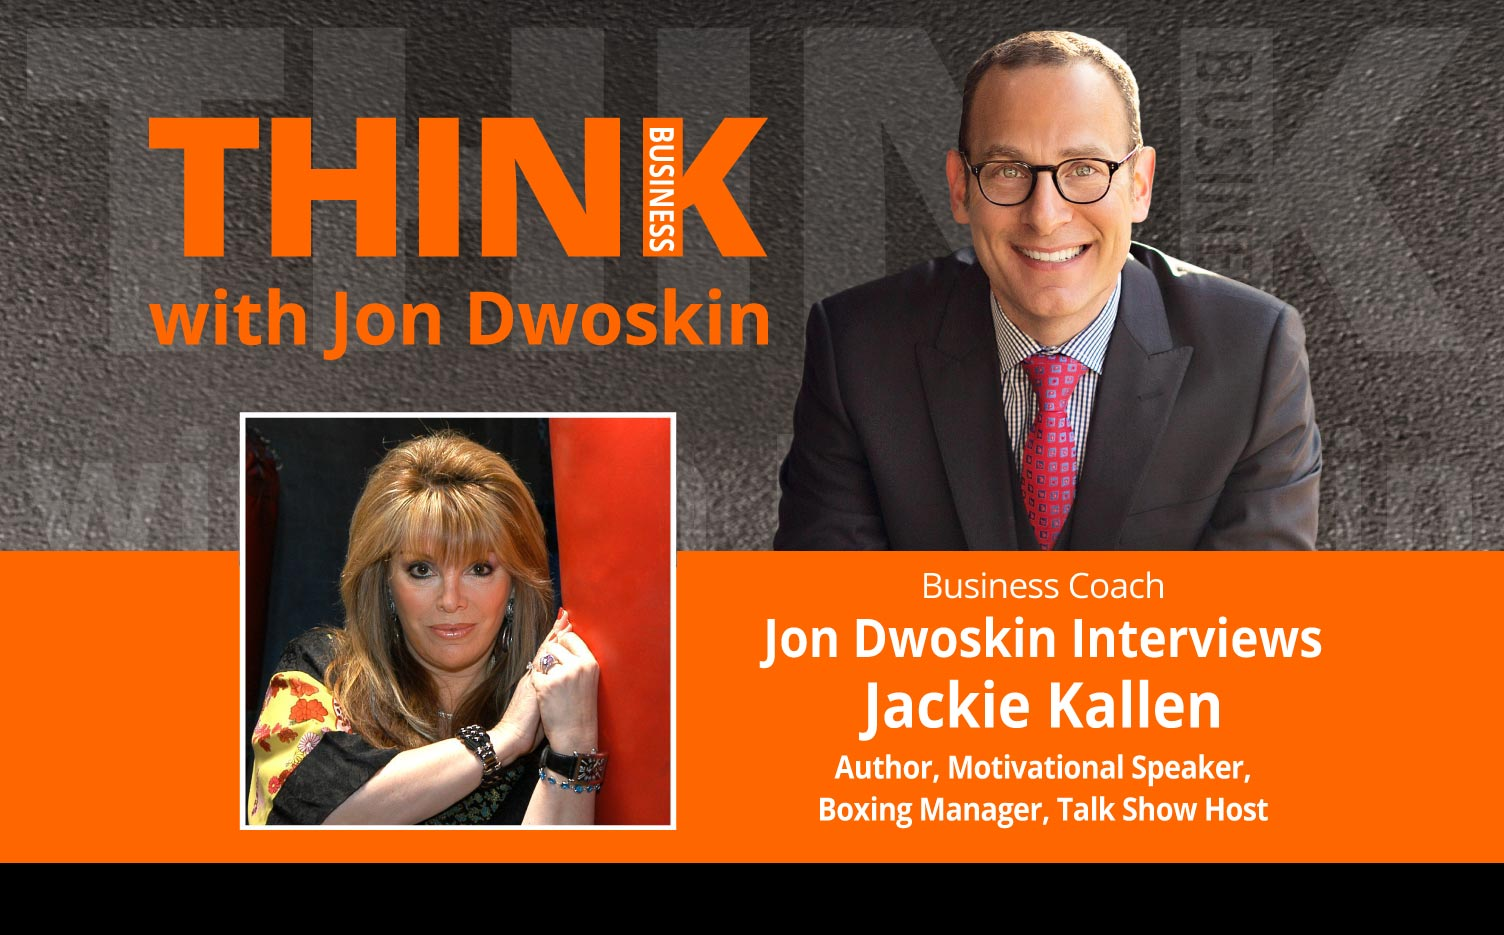 THINK Business Podcast:Jon Dwoskin Interviews Jackie Kallen, Author, Motivational Speaker, Boxing Manager, Talk Show Host